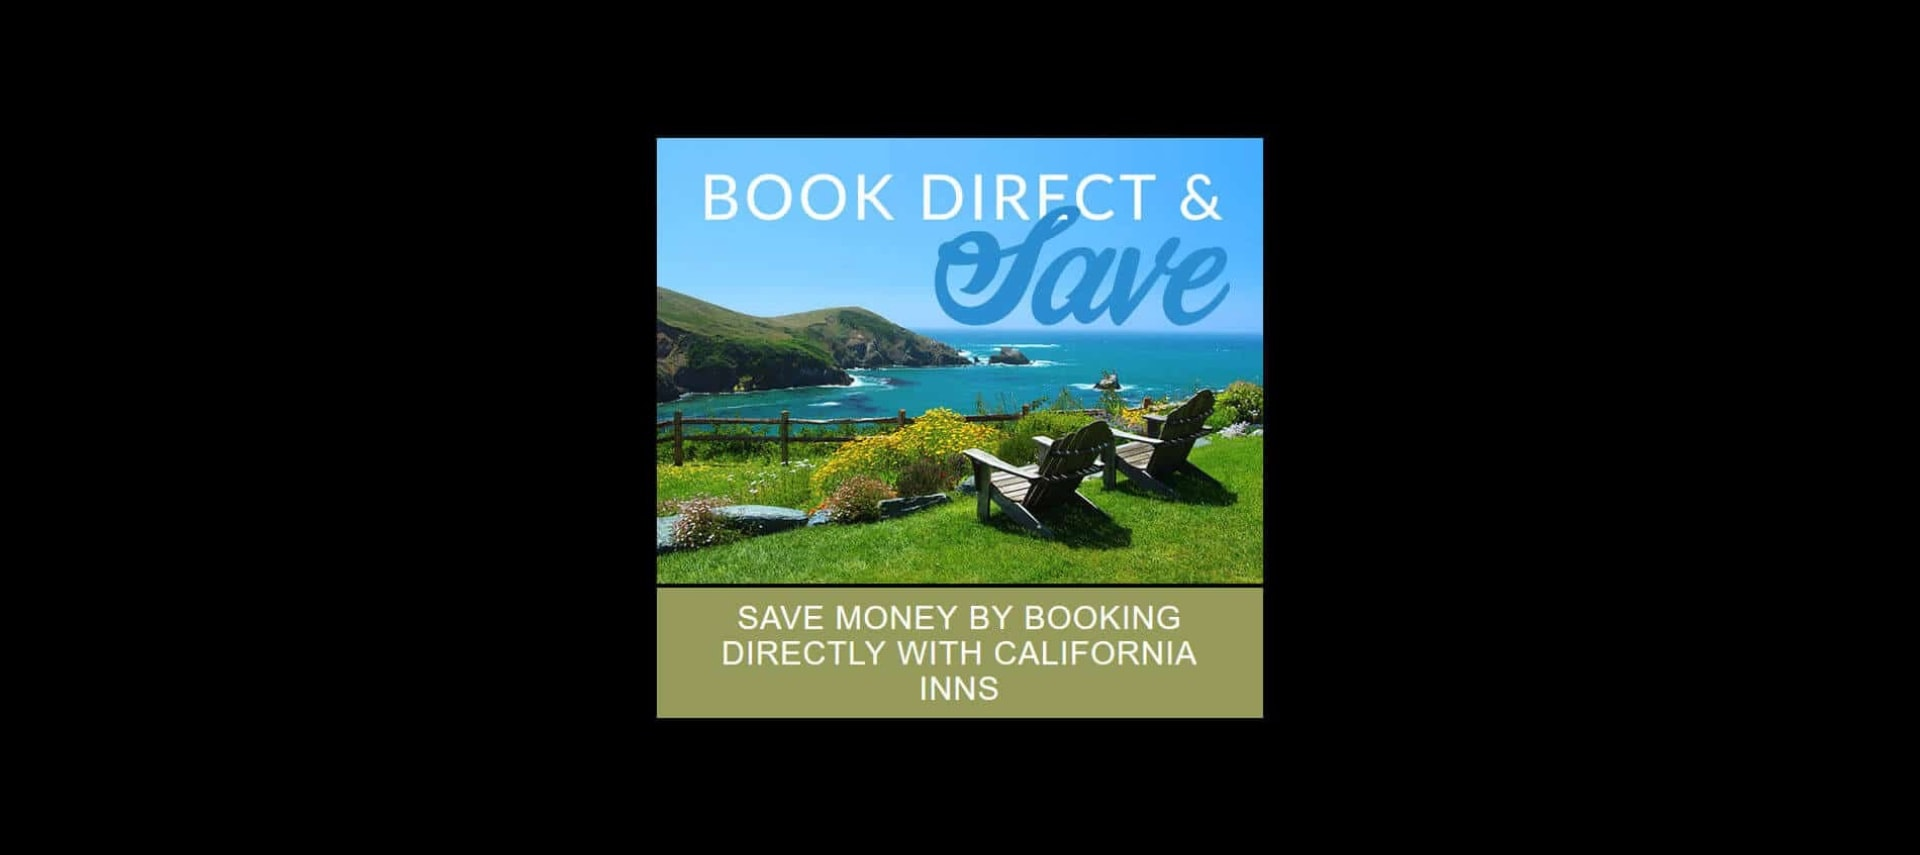 California coastline with rocks and ocean - Book Direct & Save